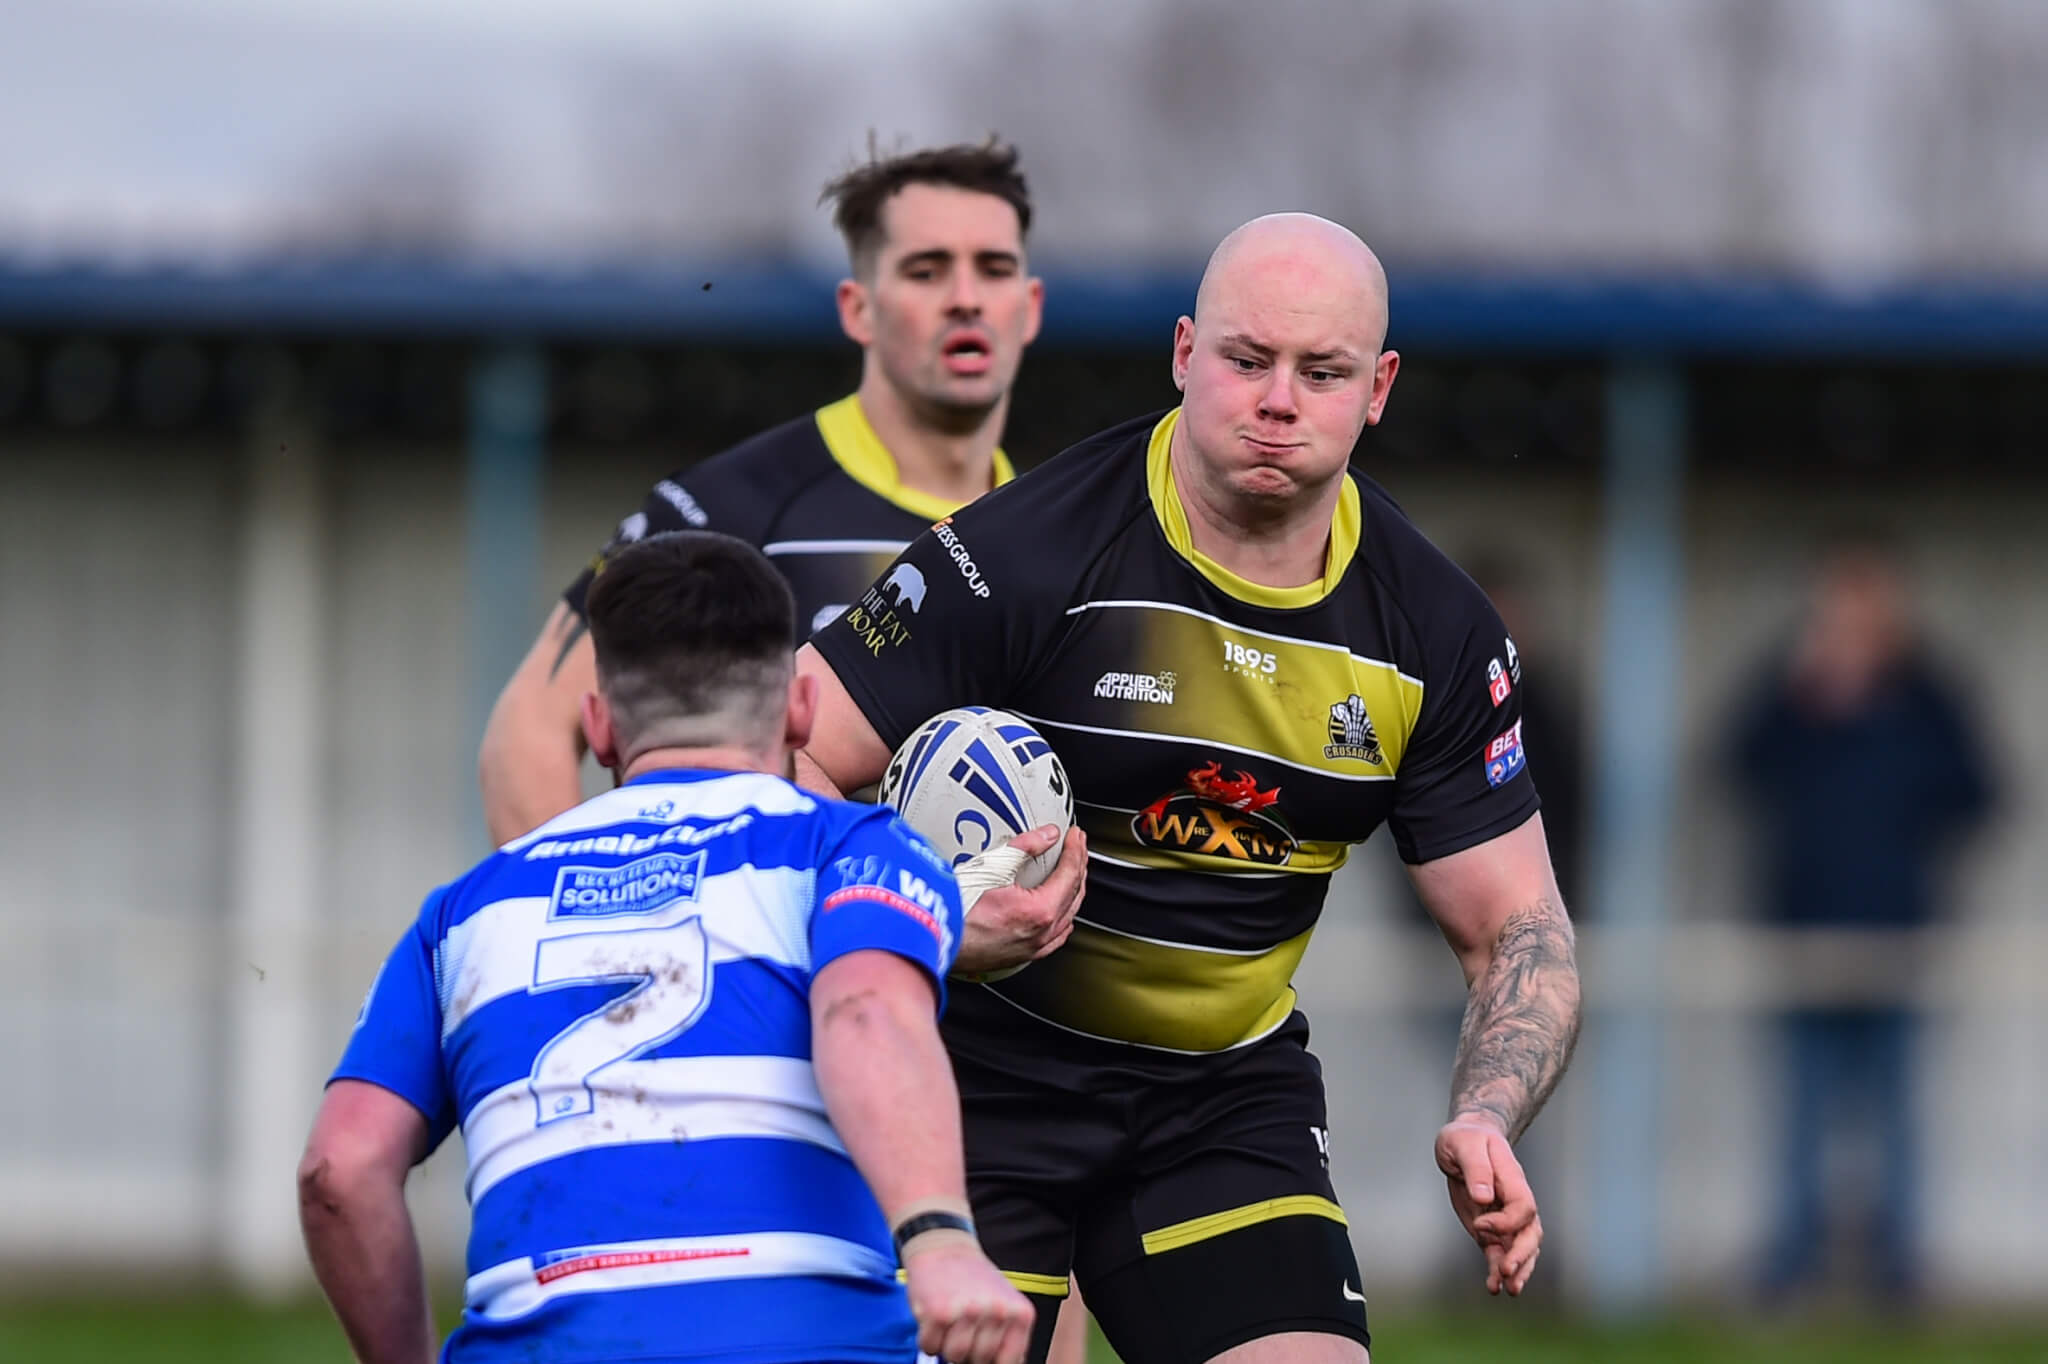 Details confirmed for cup tie with Hunslet